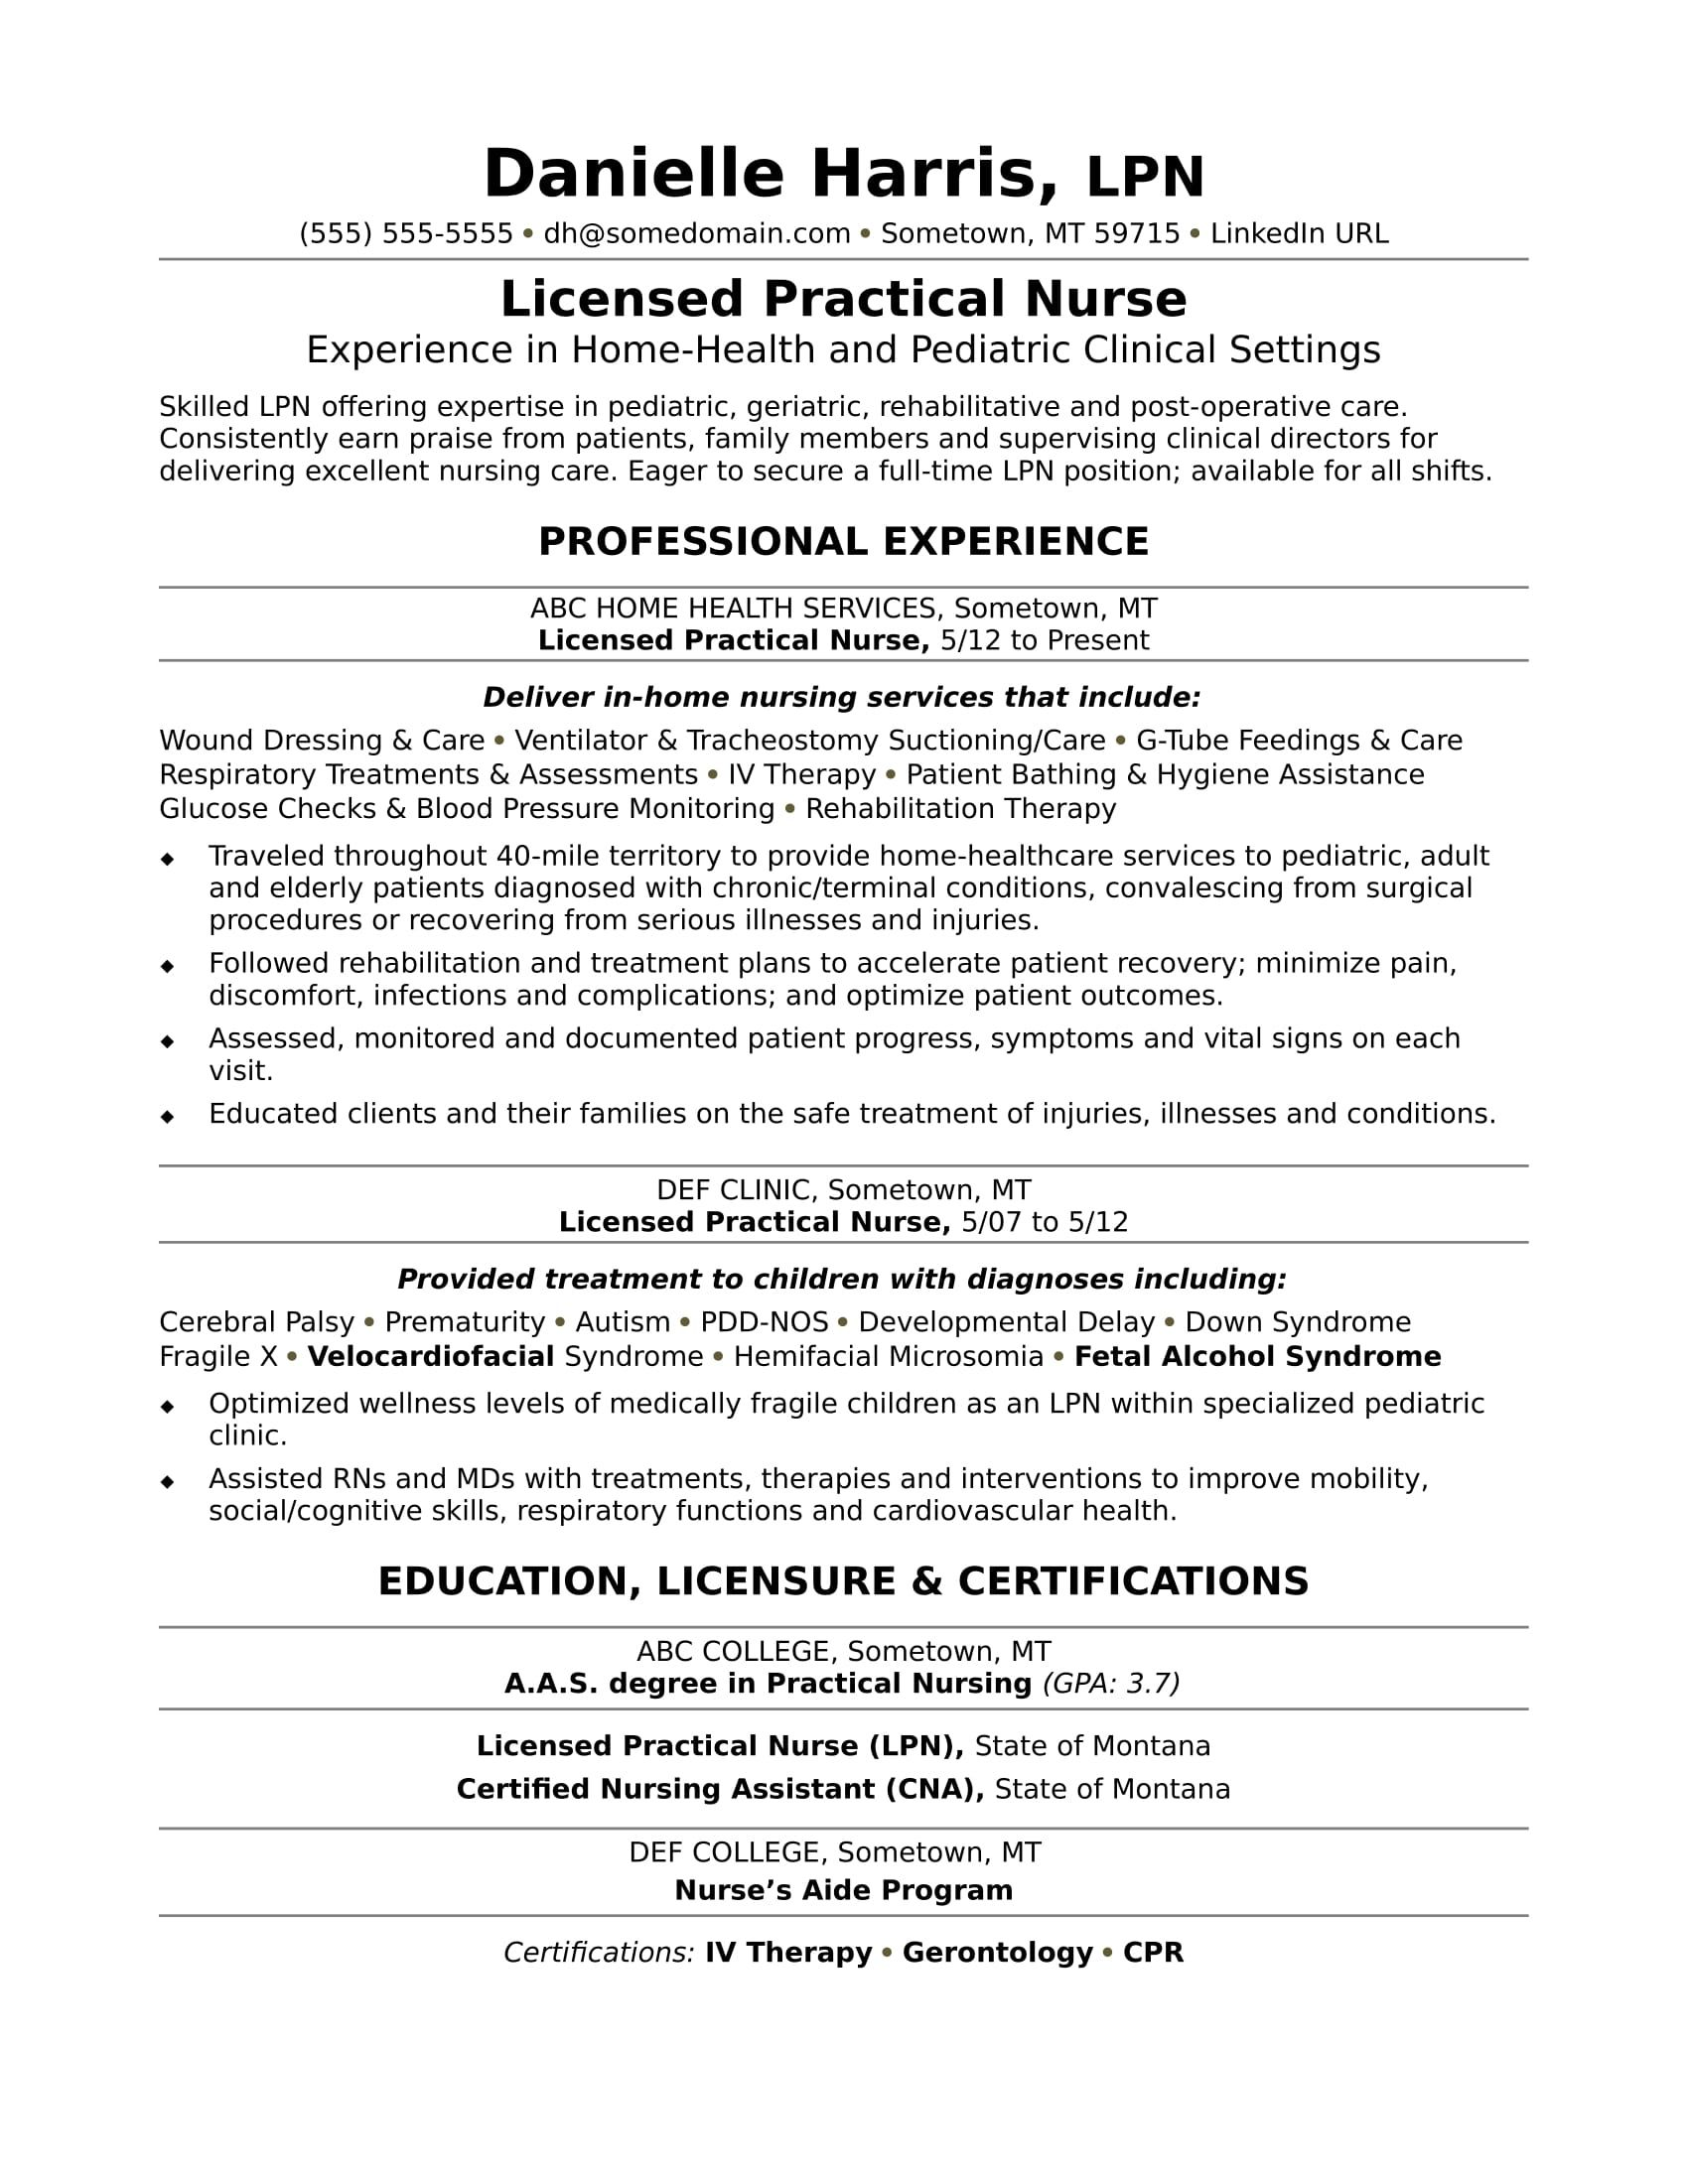 Home Health Nurse Resume Need To Revive Your Licensed Practical Nurse Resume Check Out